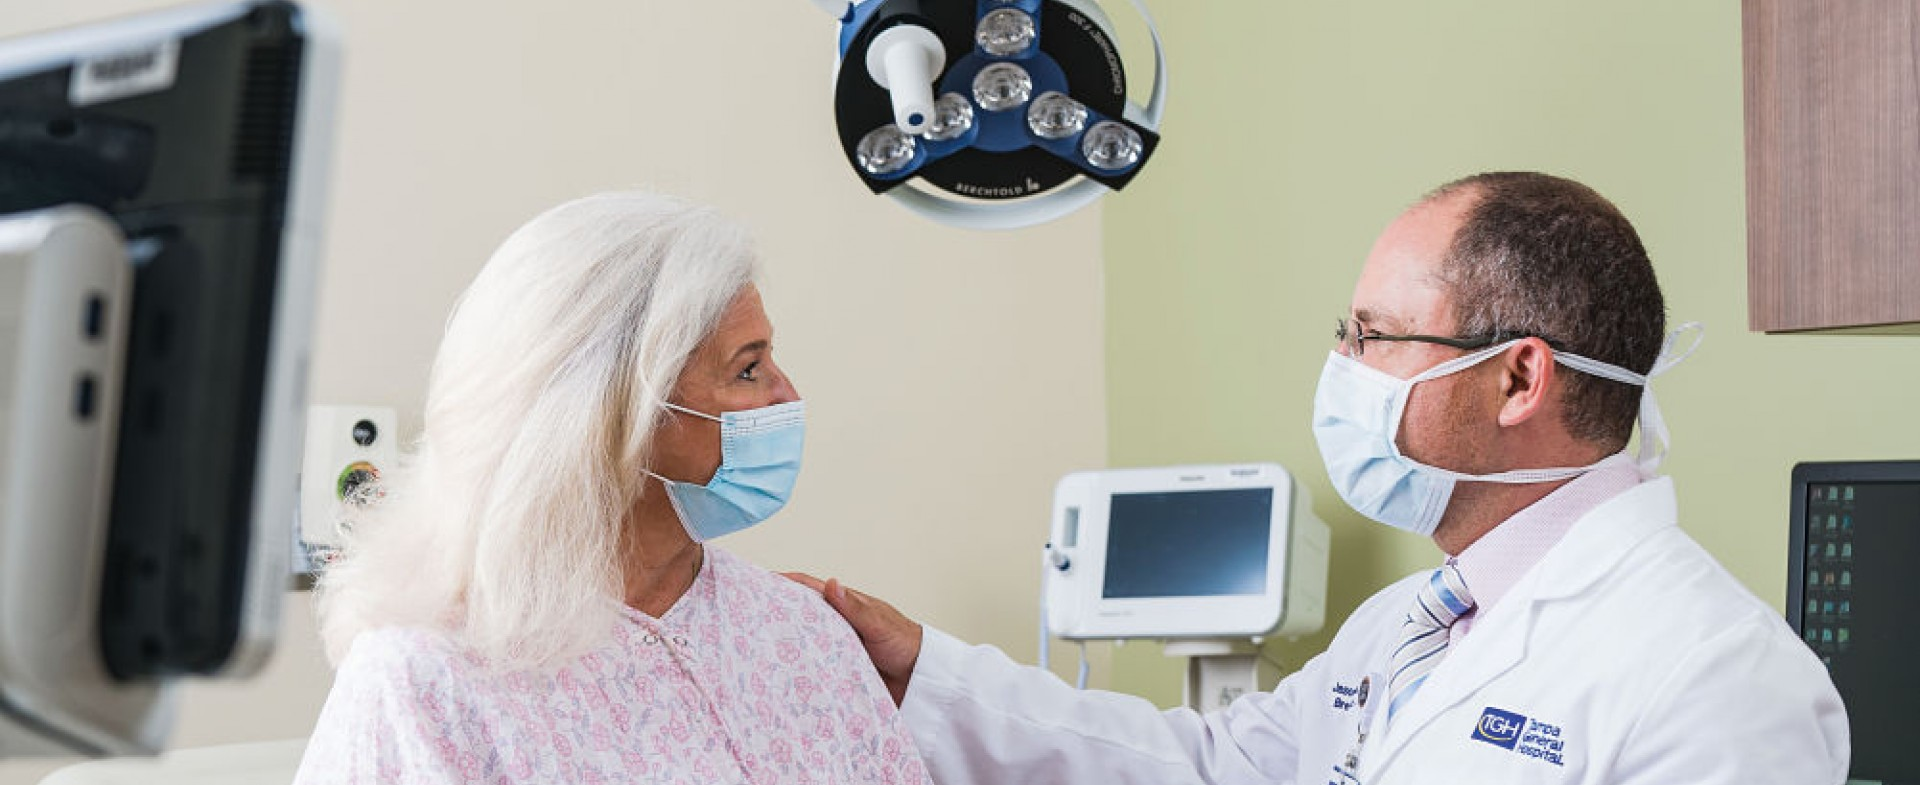 Cryoablation Is A Non-Surgical Way To Treat Breast Cancer